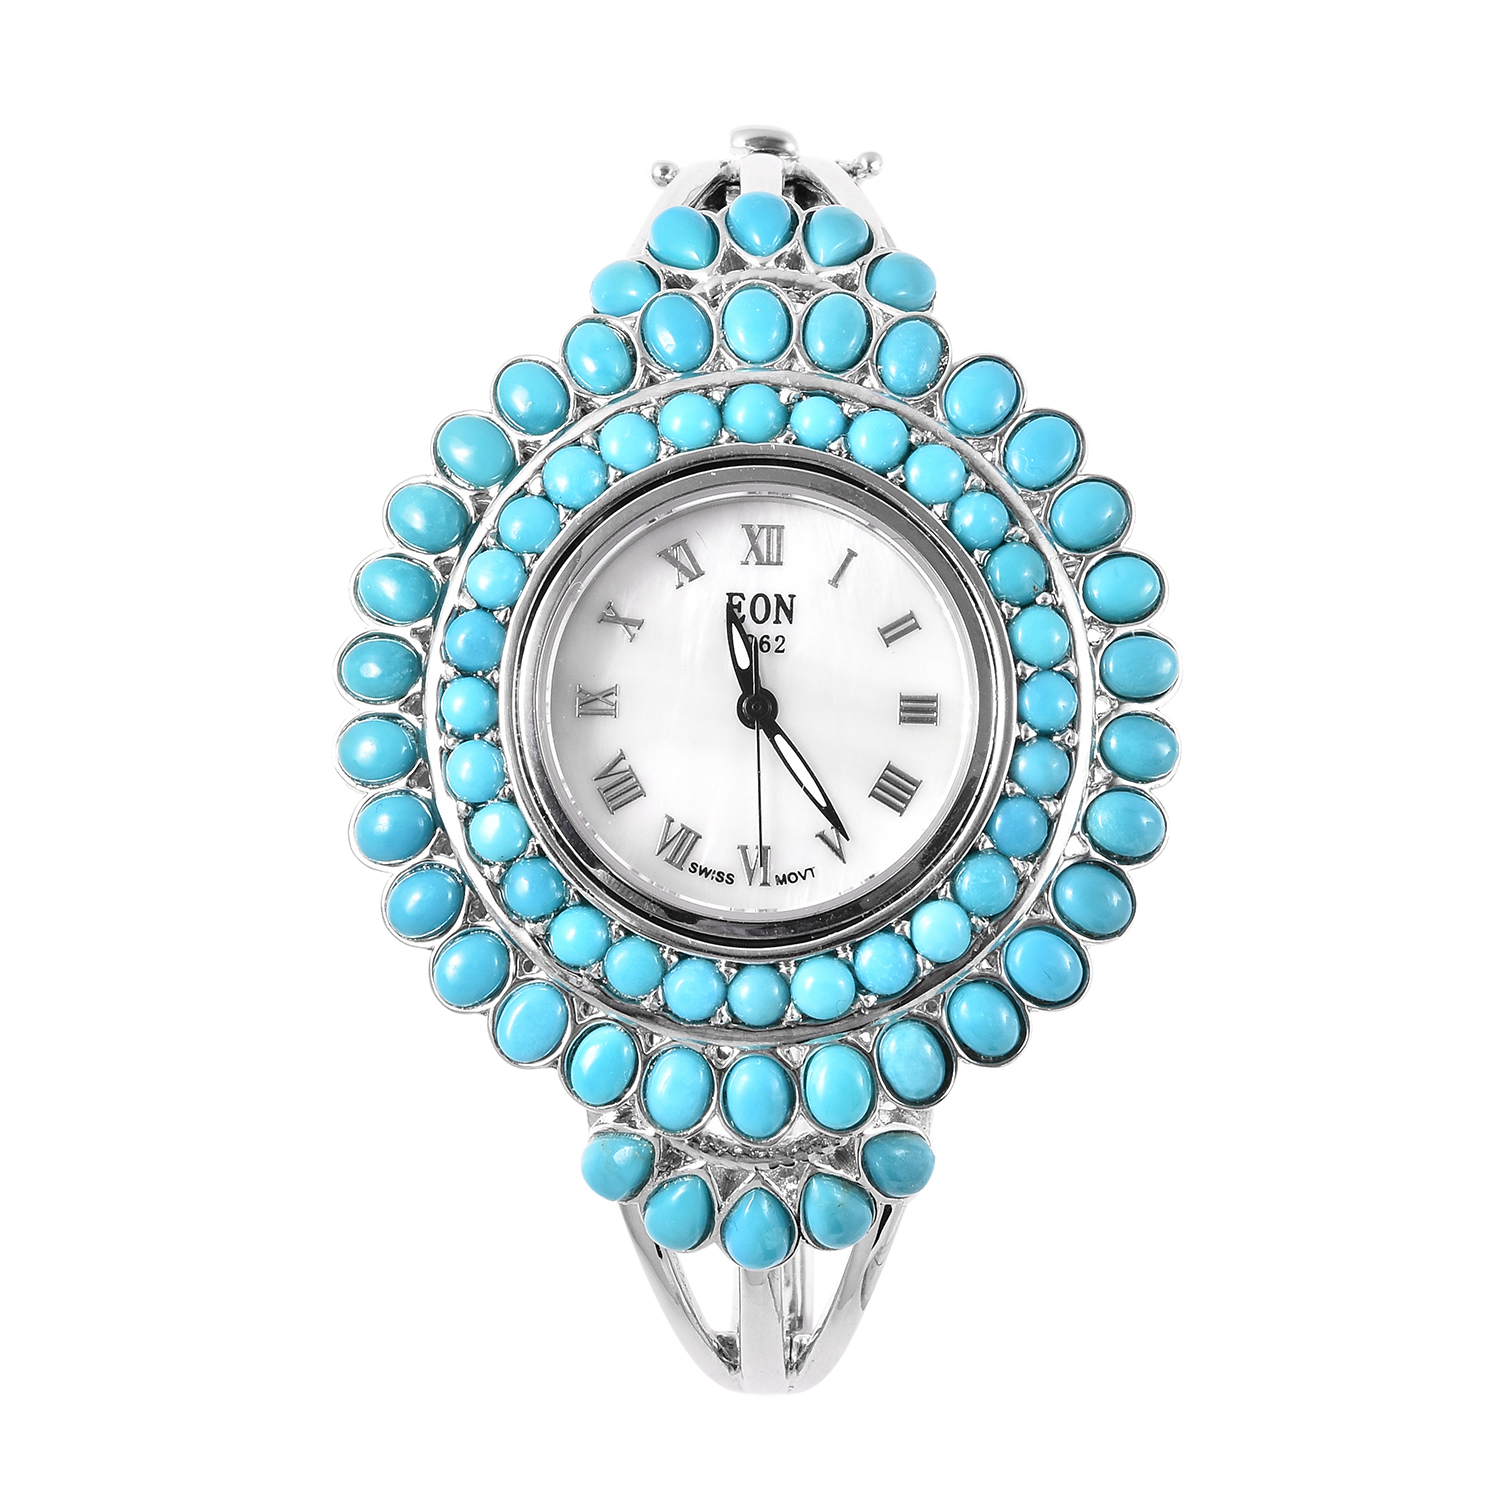 EON 1962 Arizona Sleeping Beauty Turquoise Swiss Movement Water Resistant Watch in Sterling Silver with Stainless Steel Back TGW 9.50 cts.